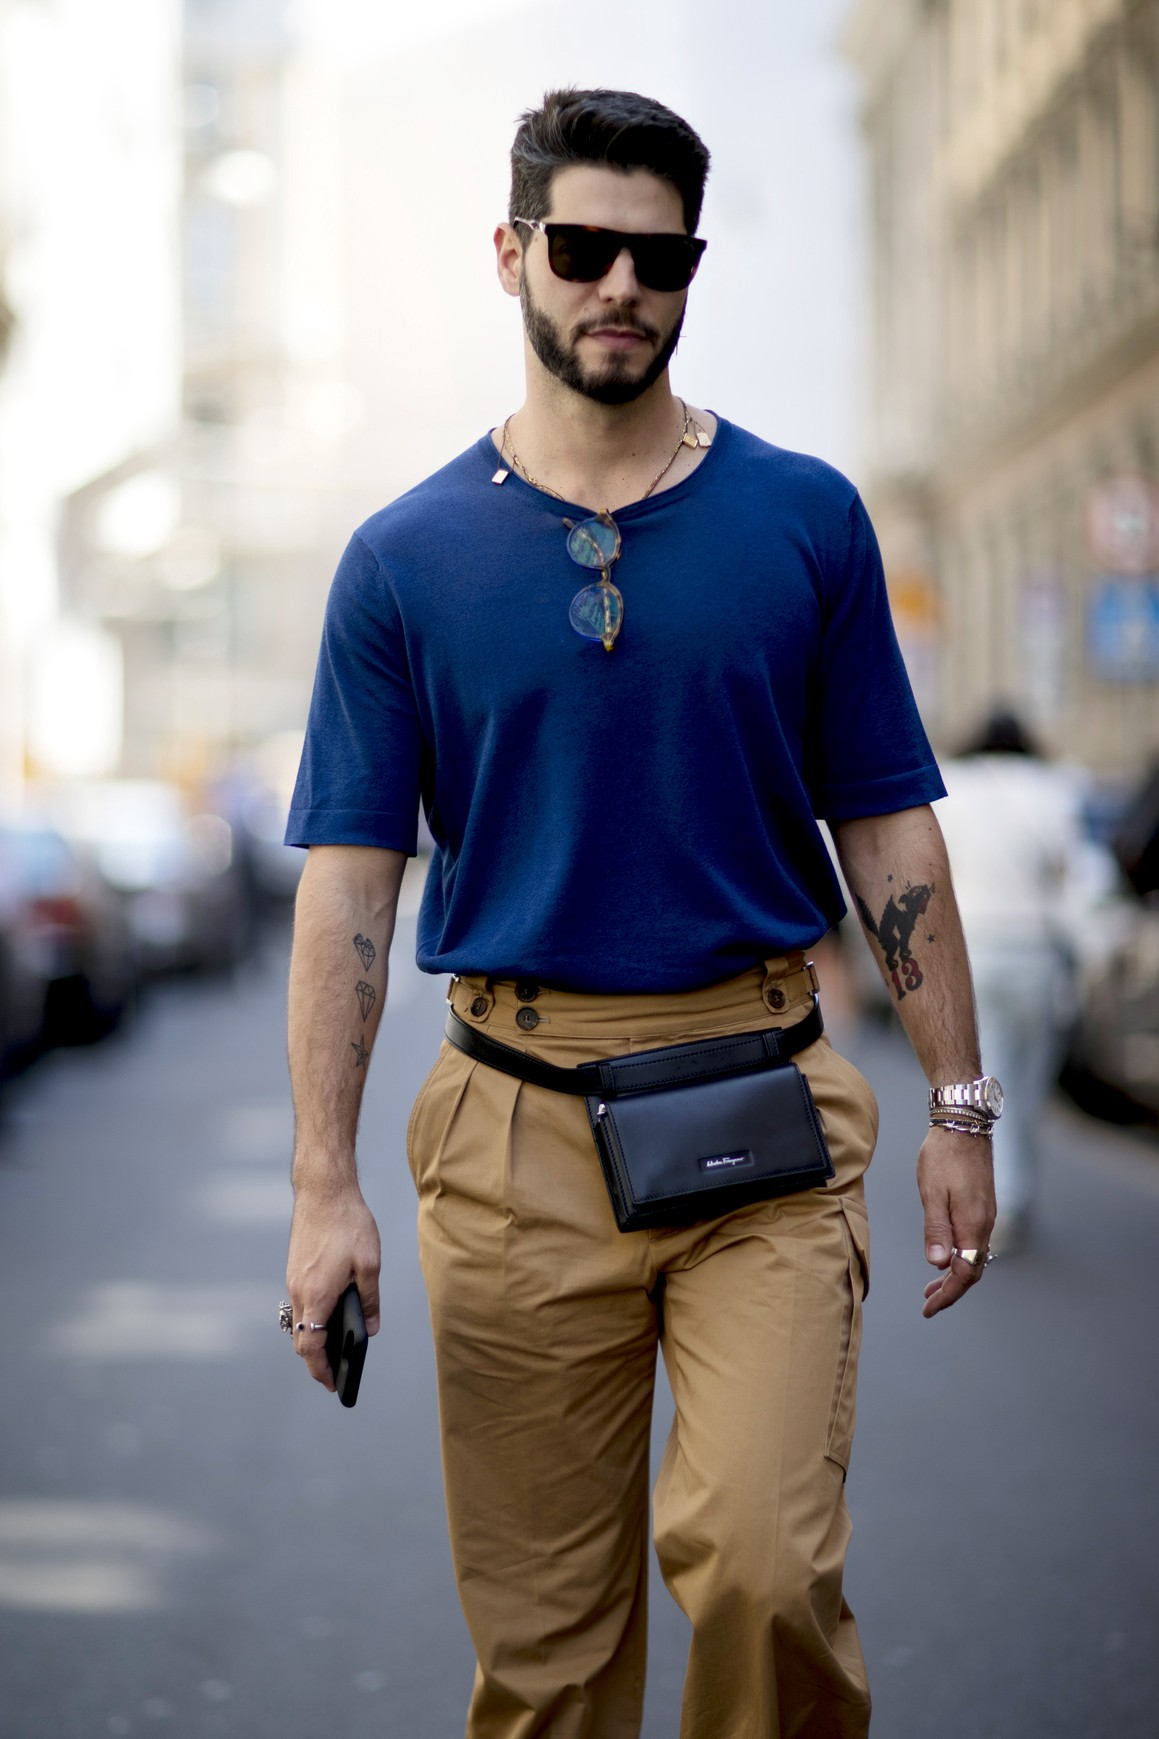 Fanny Packs are Back: Here's 5 Ways to Wear Them – THREAD ...